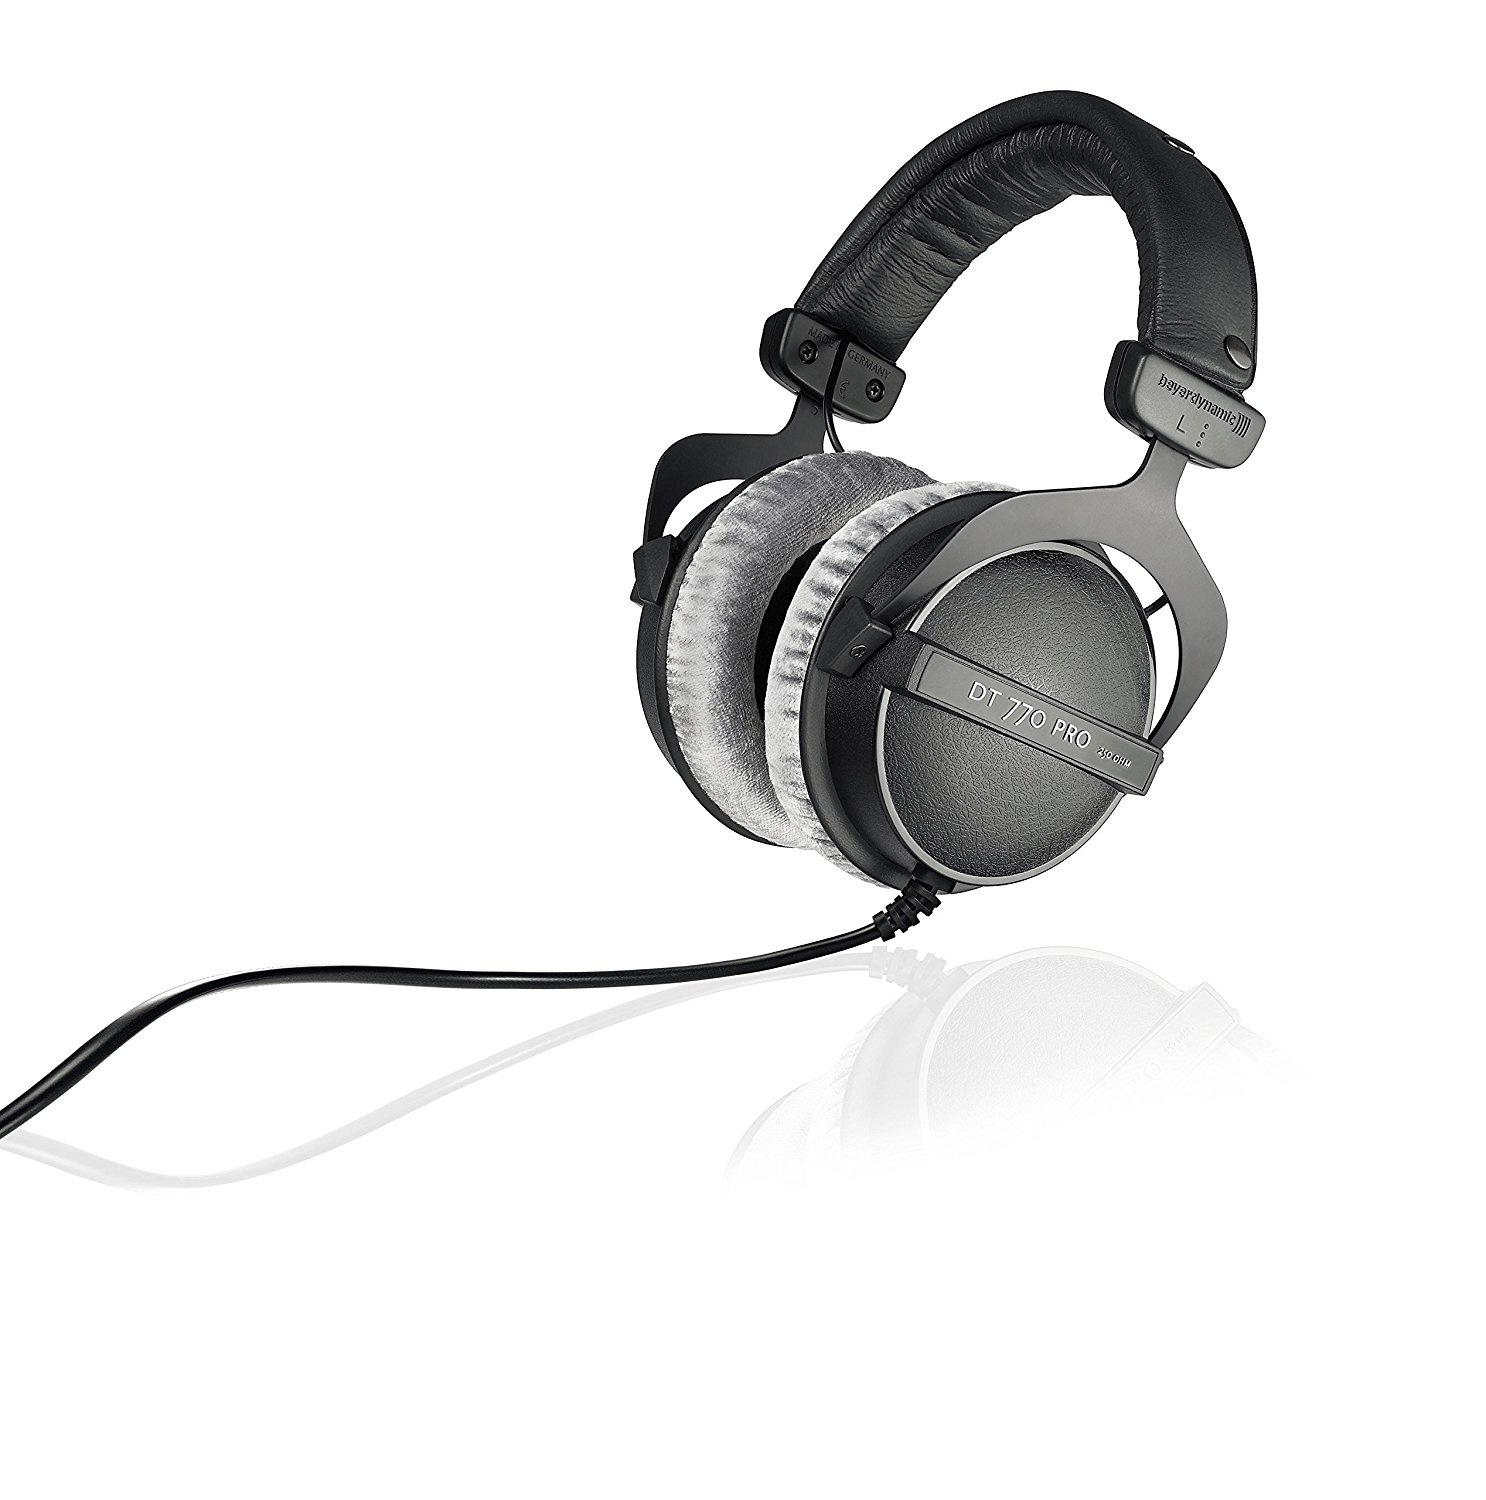 Beyerdynamic DT770 Pro Headphones Review